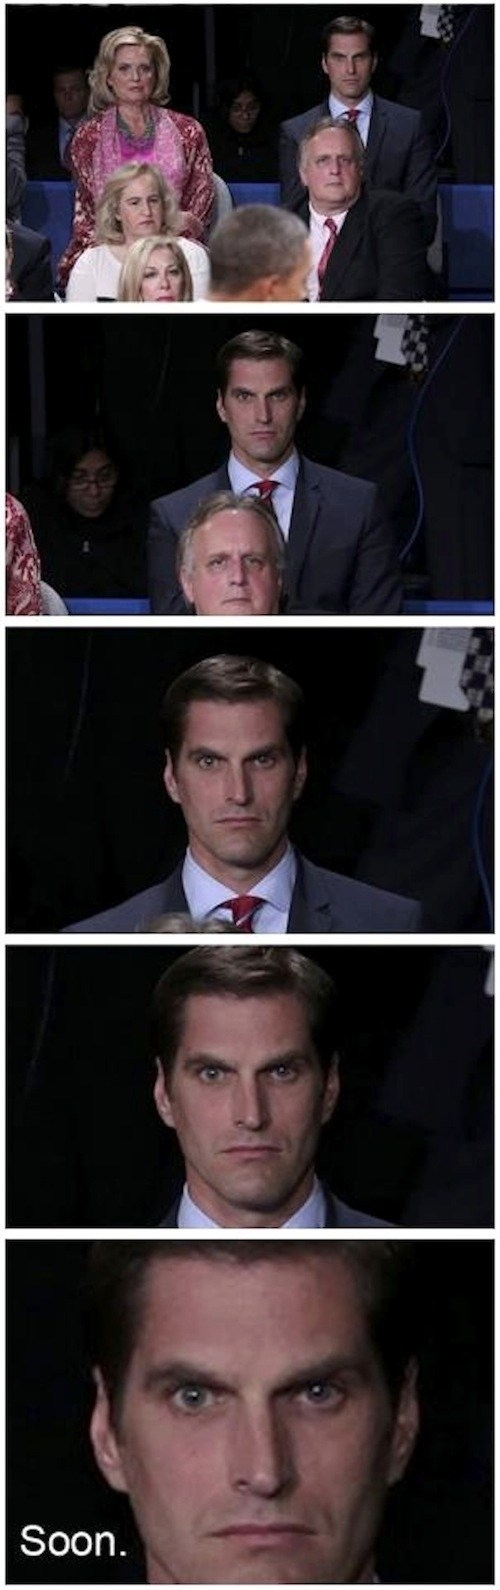 Josh Romney at the Debate